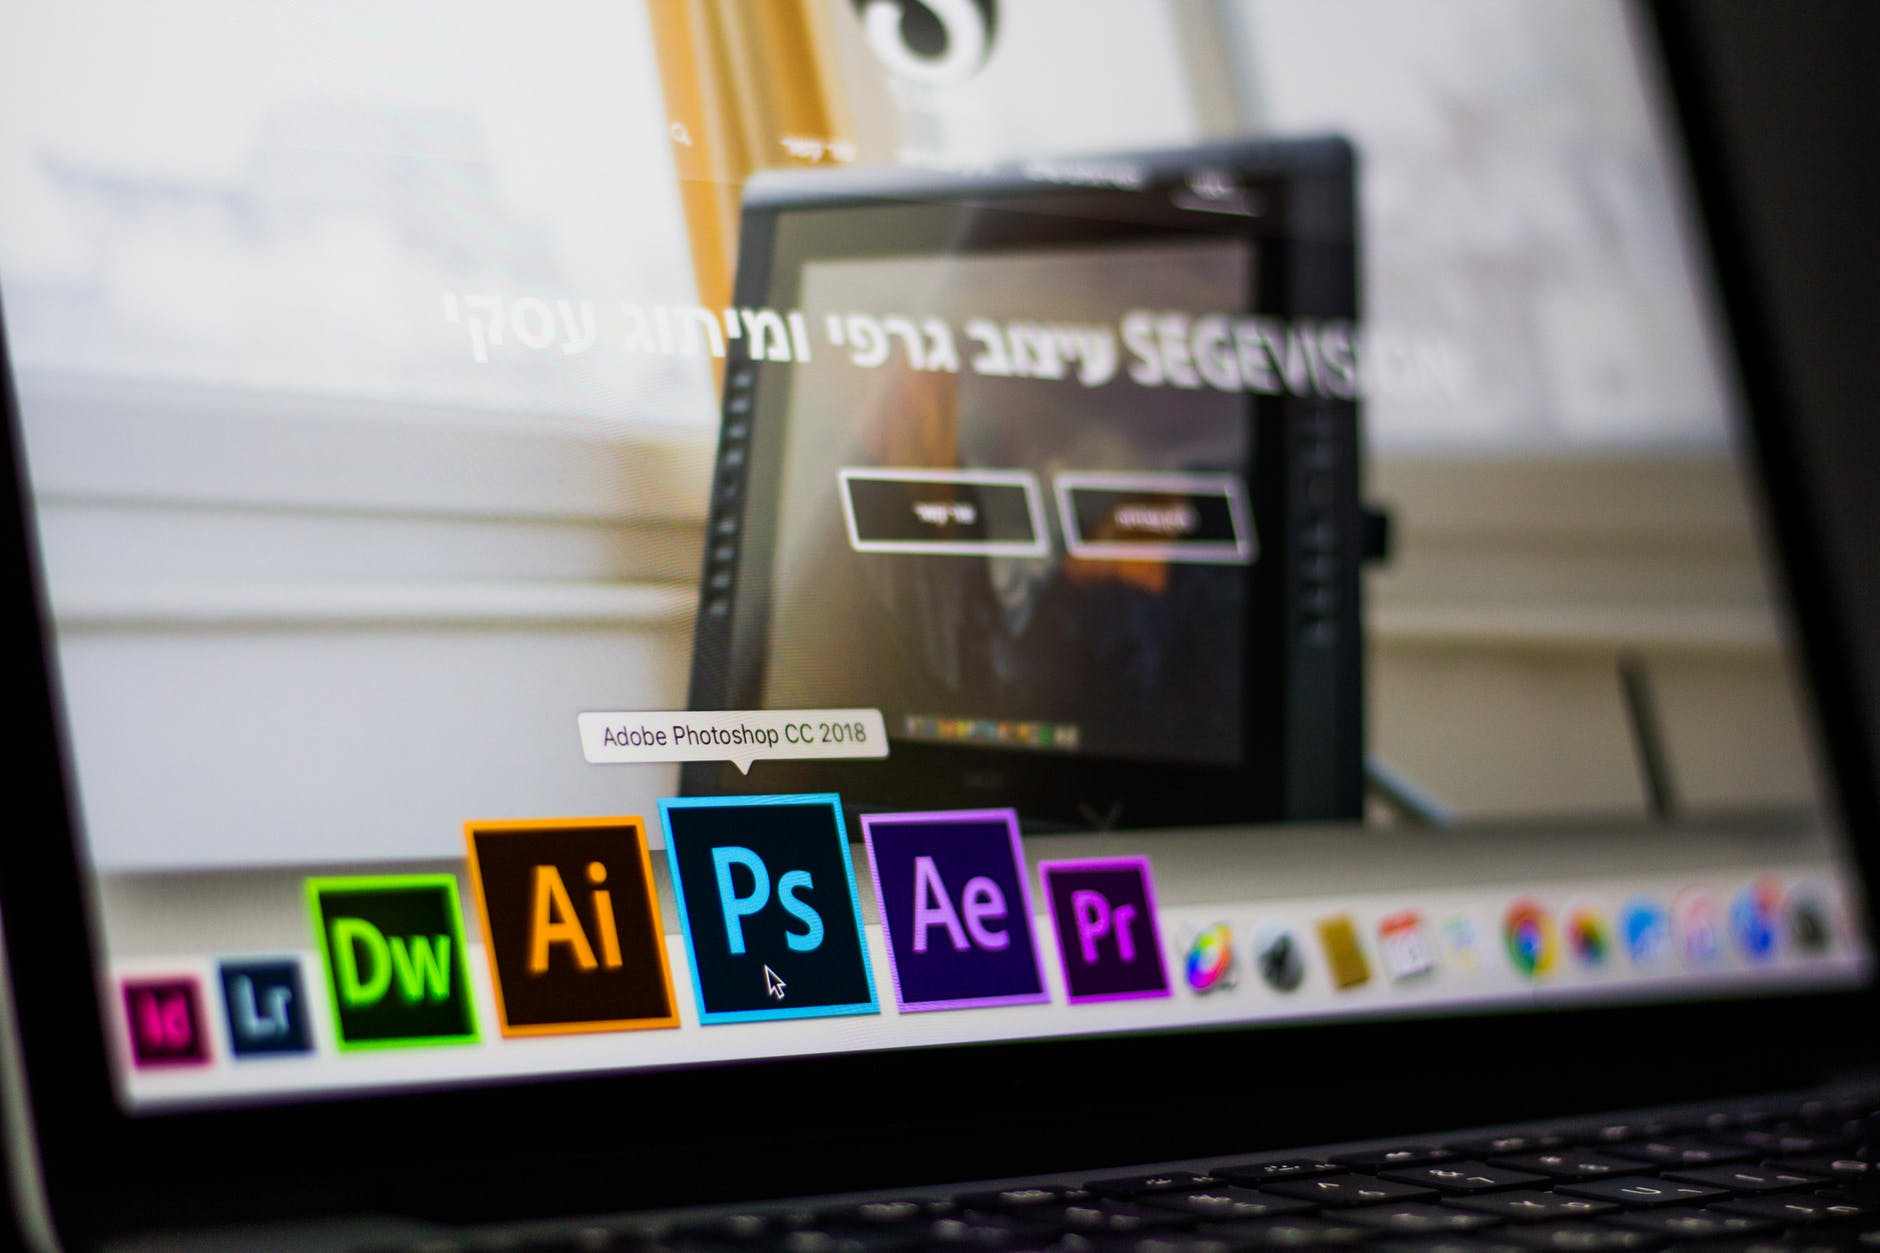 Learning Photoshop Learn The Ins And Outs Of Photoshop With This Master Class Bundle